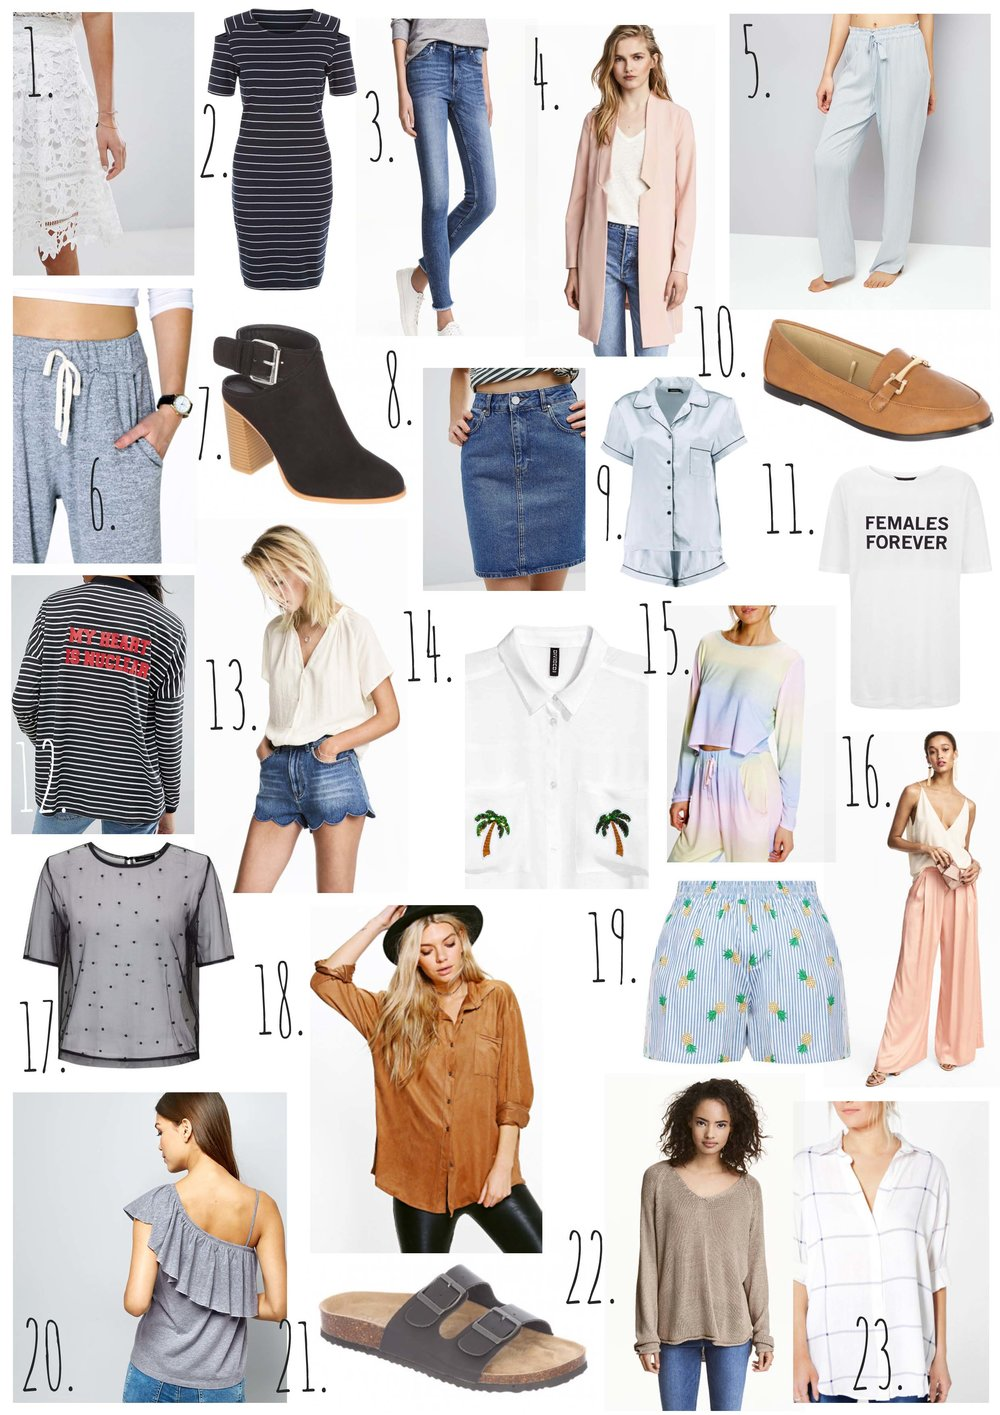 23 Things I Need In My Summer Wardrobe.